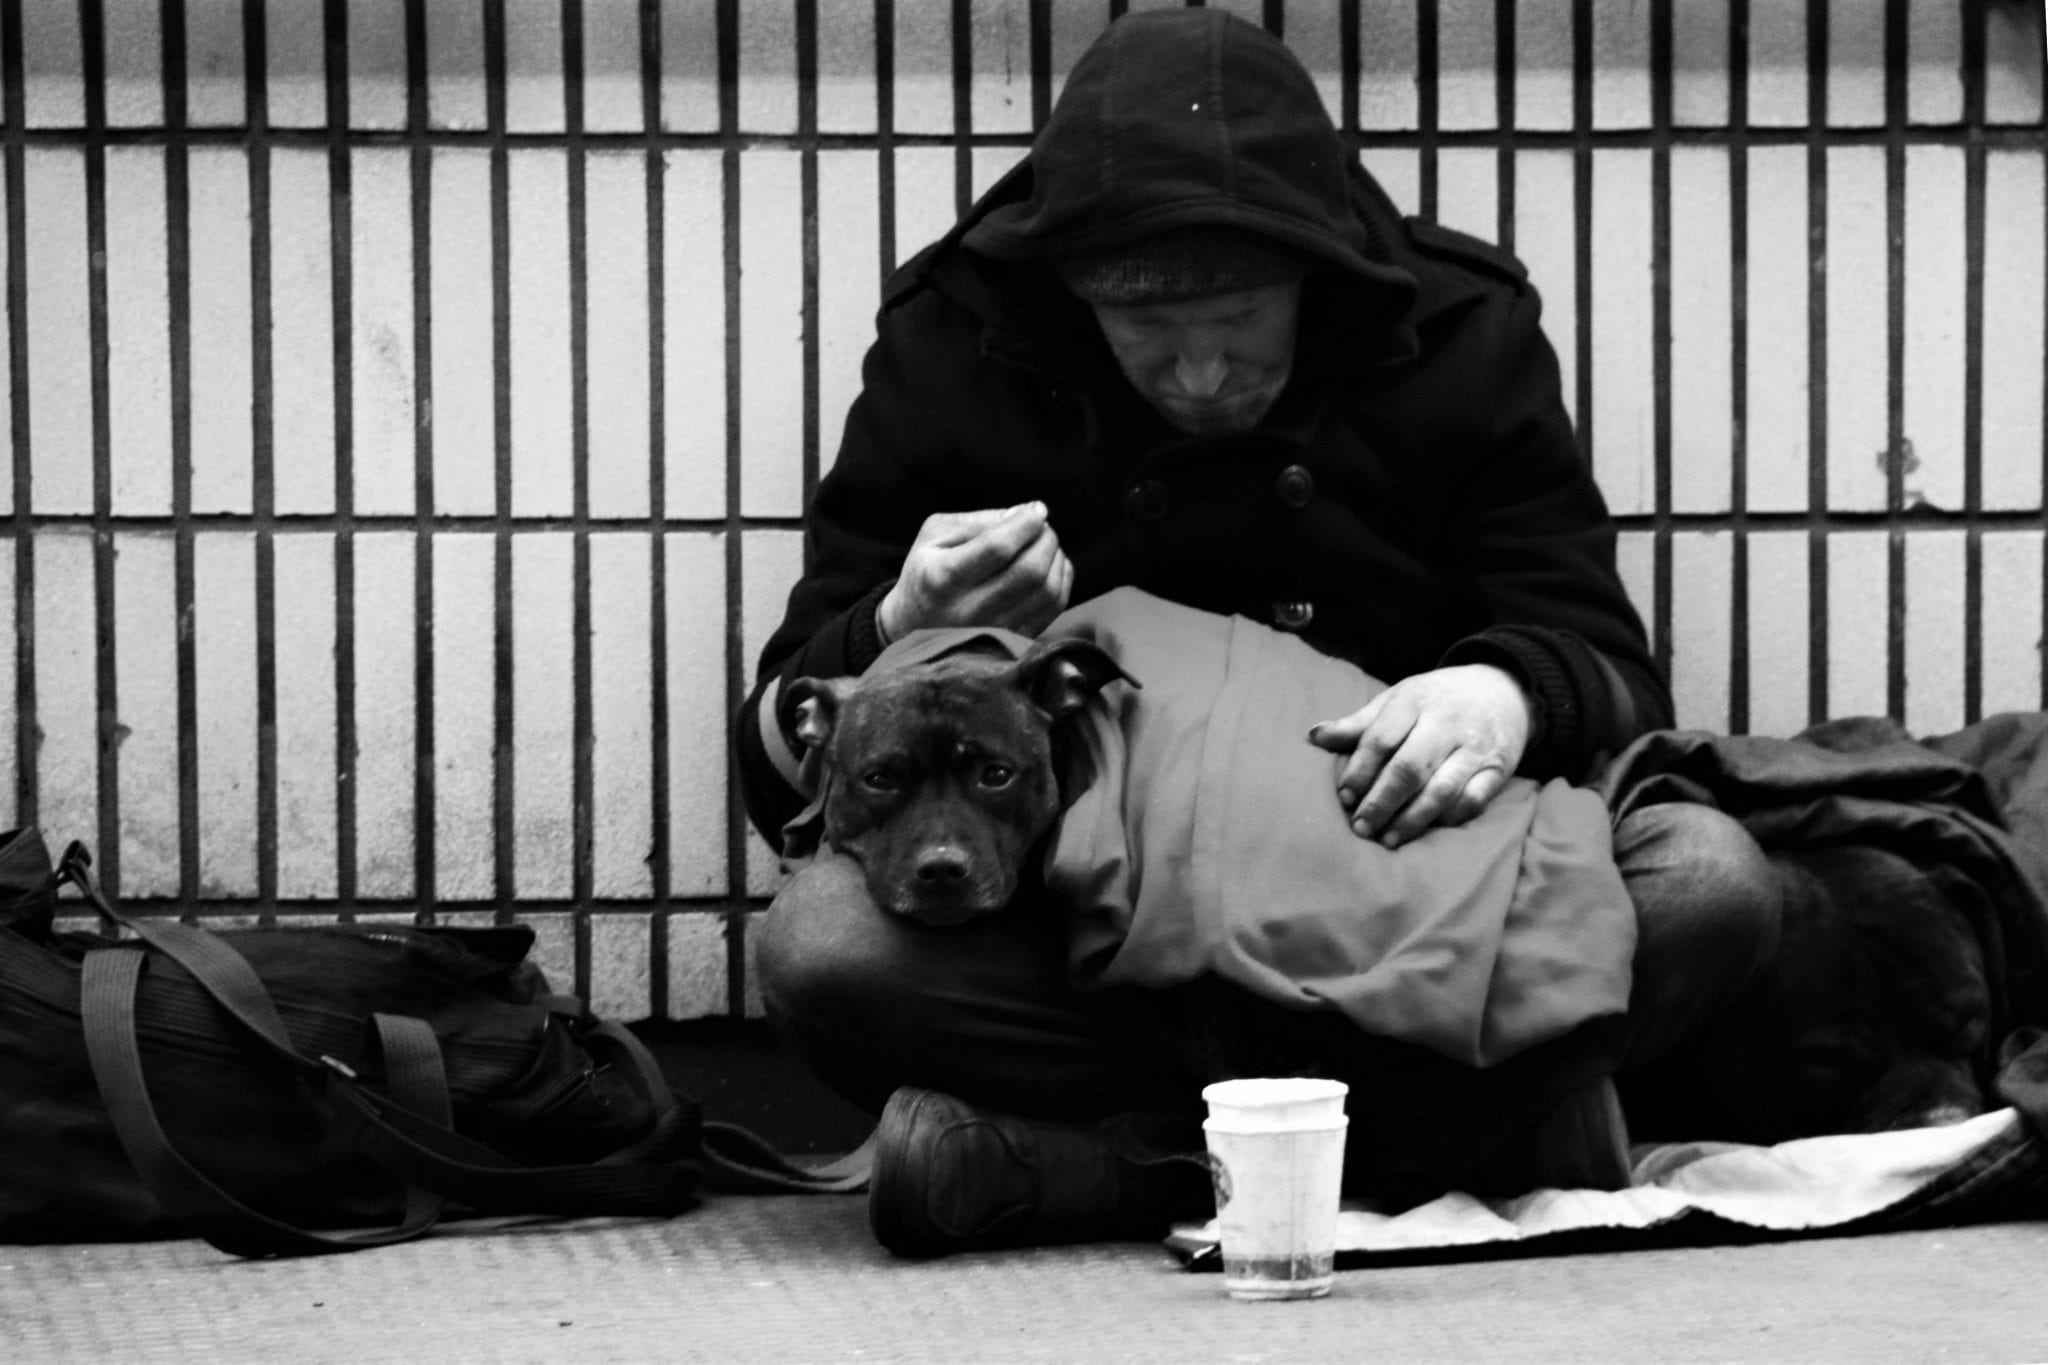 Thousands of Victoria's do not have safe and secure housing. The latest Australian Bureau of Statistics states that 24,825 people were experiencing homelessness in Victoria on census night in 2016. In this day and age, we believe that no Victorian should be sleeping rough or be forced to live in unsuitable and unstable housing. We […]